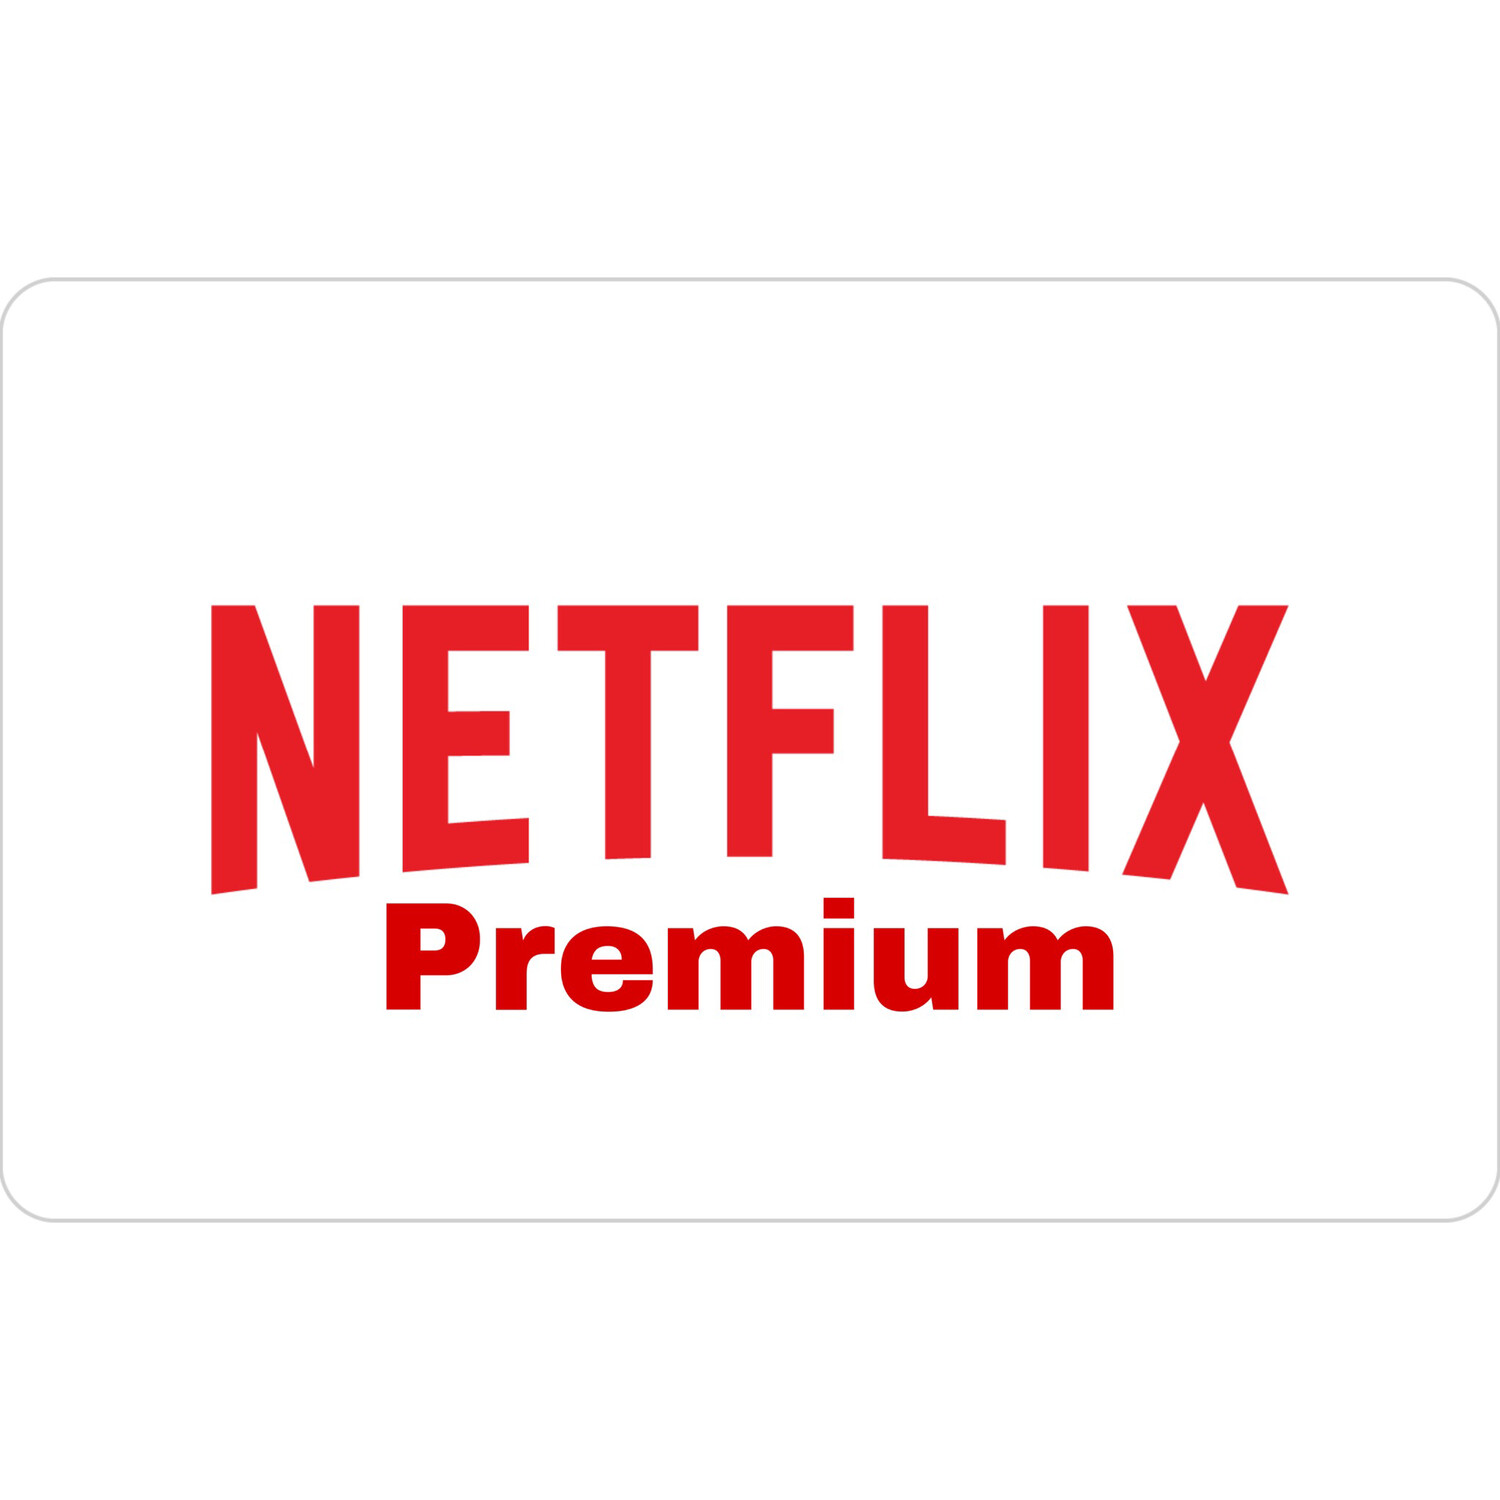 Netflix Premium 1 Bulan 4 Profil Shared Account